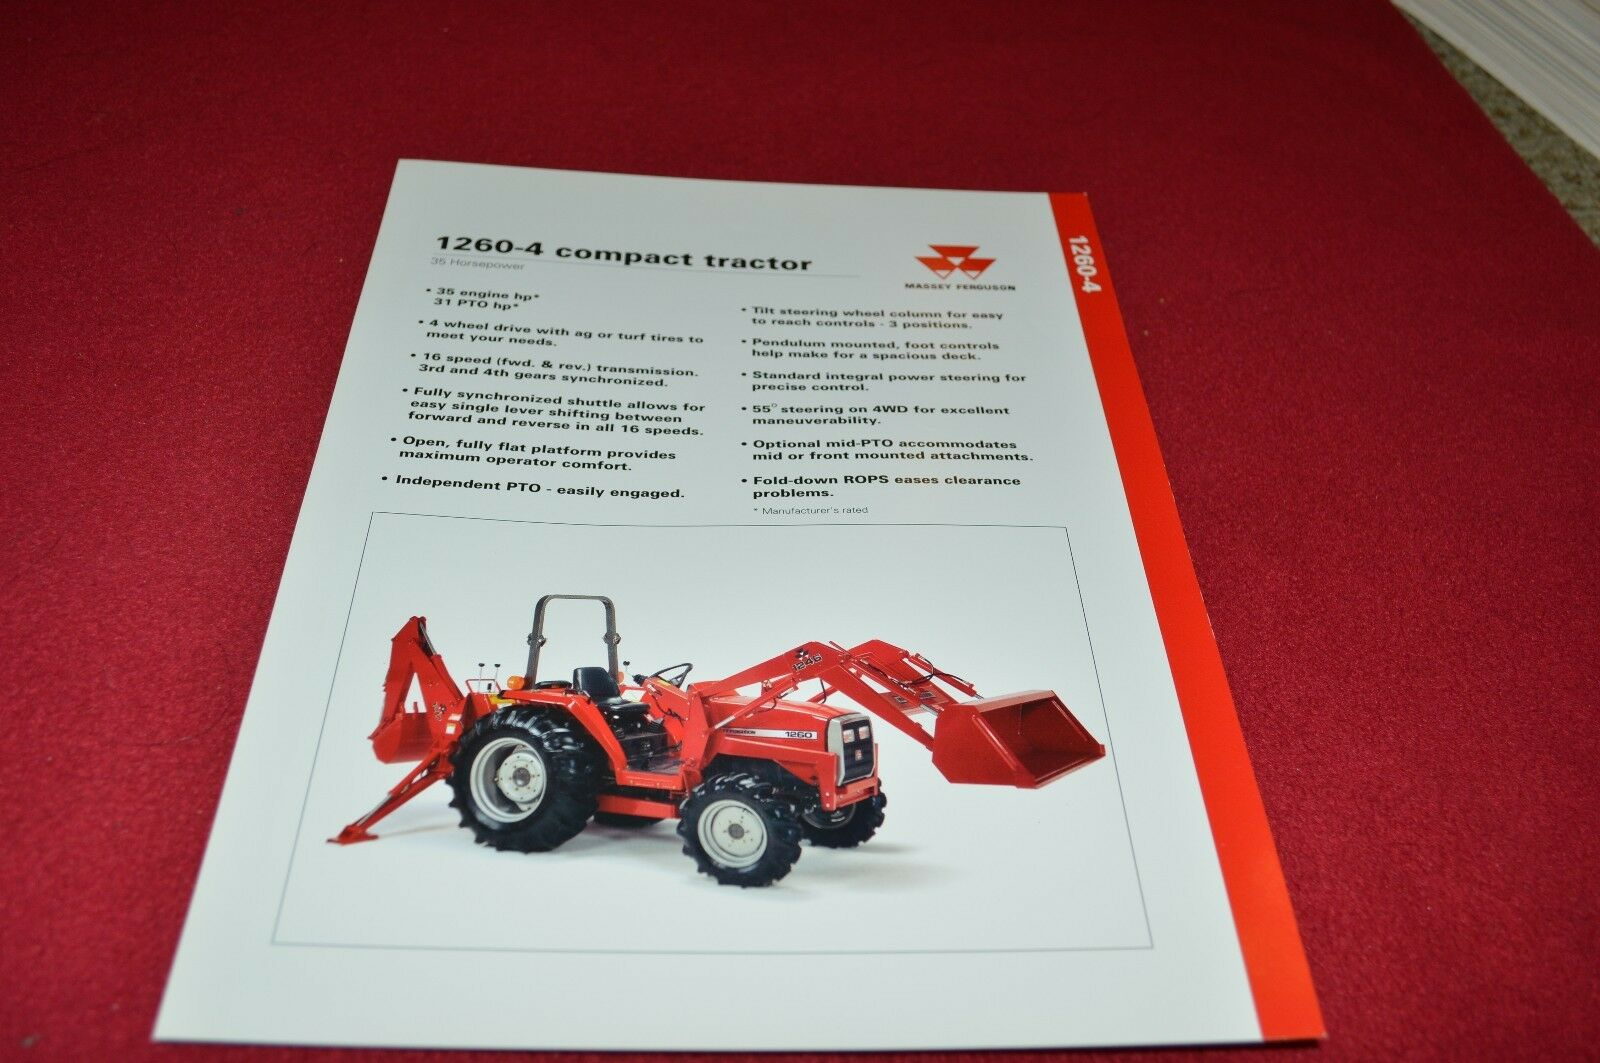 Massey Ferguson 1260 Tractor Dealers Brochure LCOH 1 of 1FREE Shipping ...